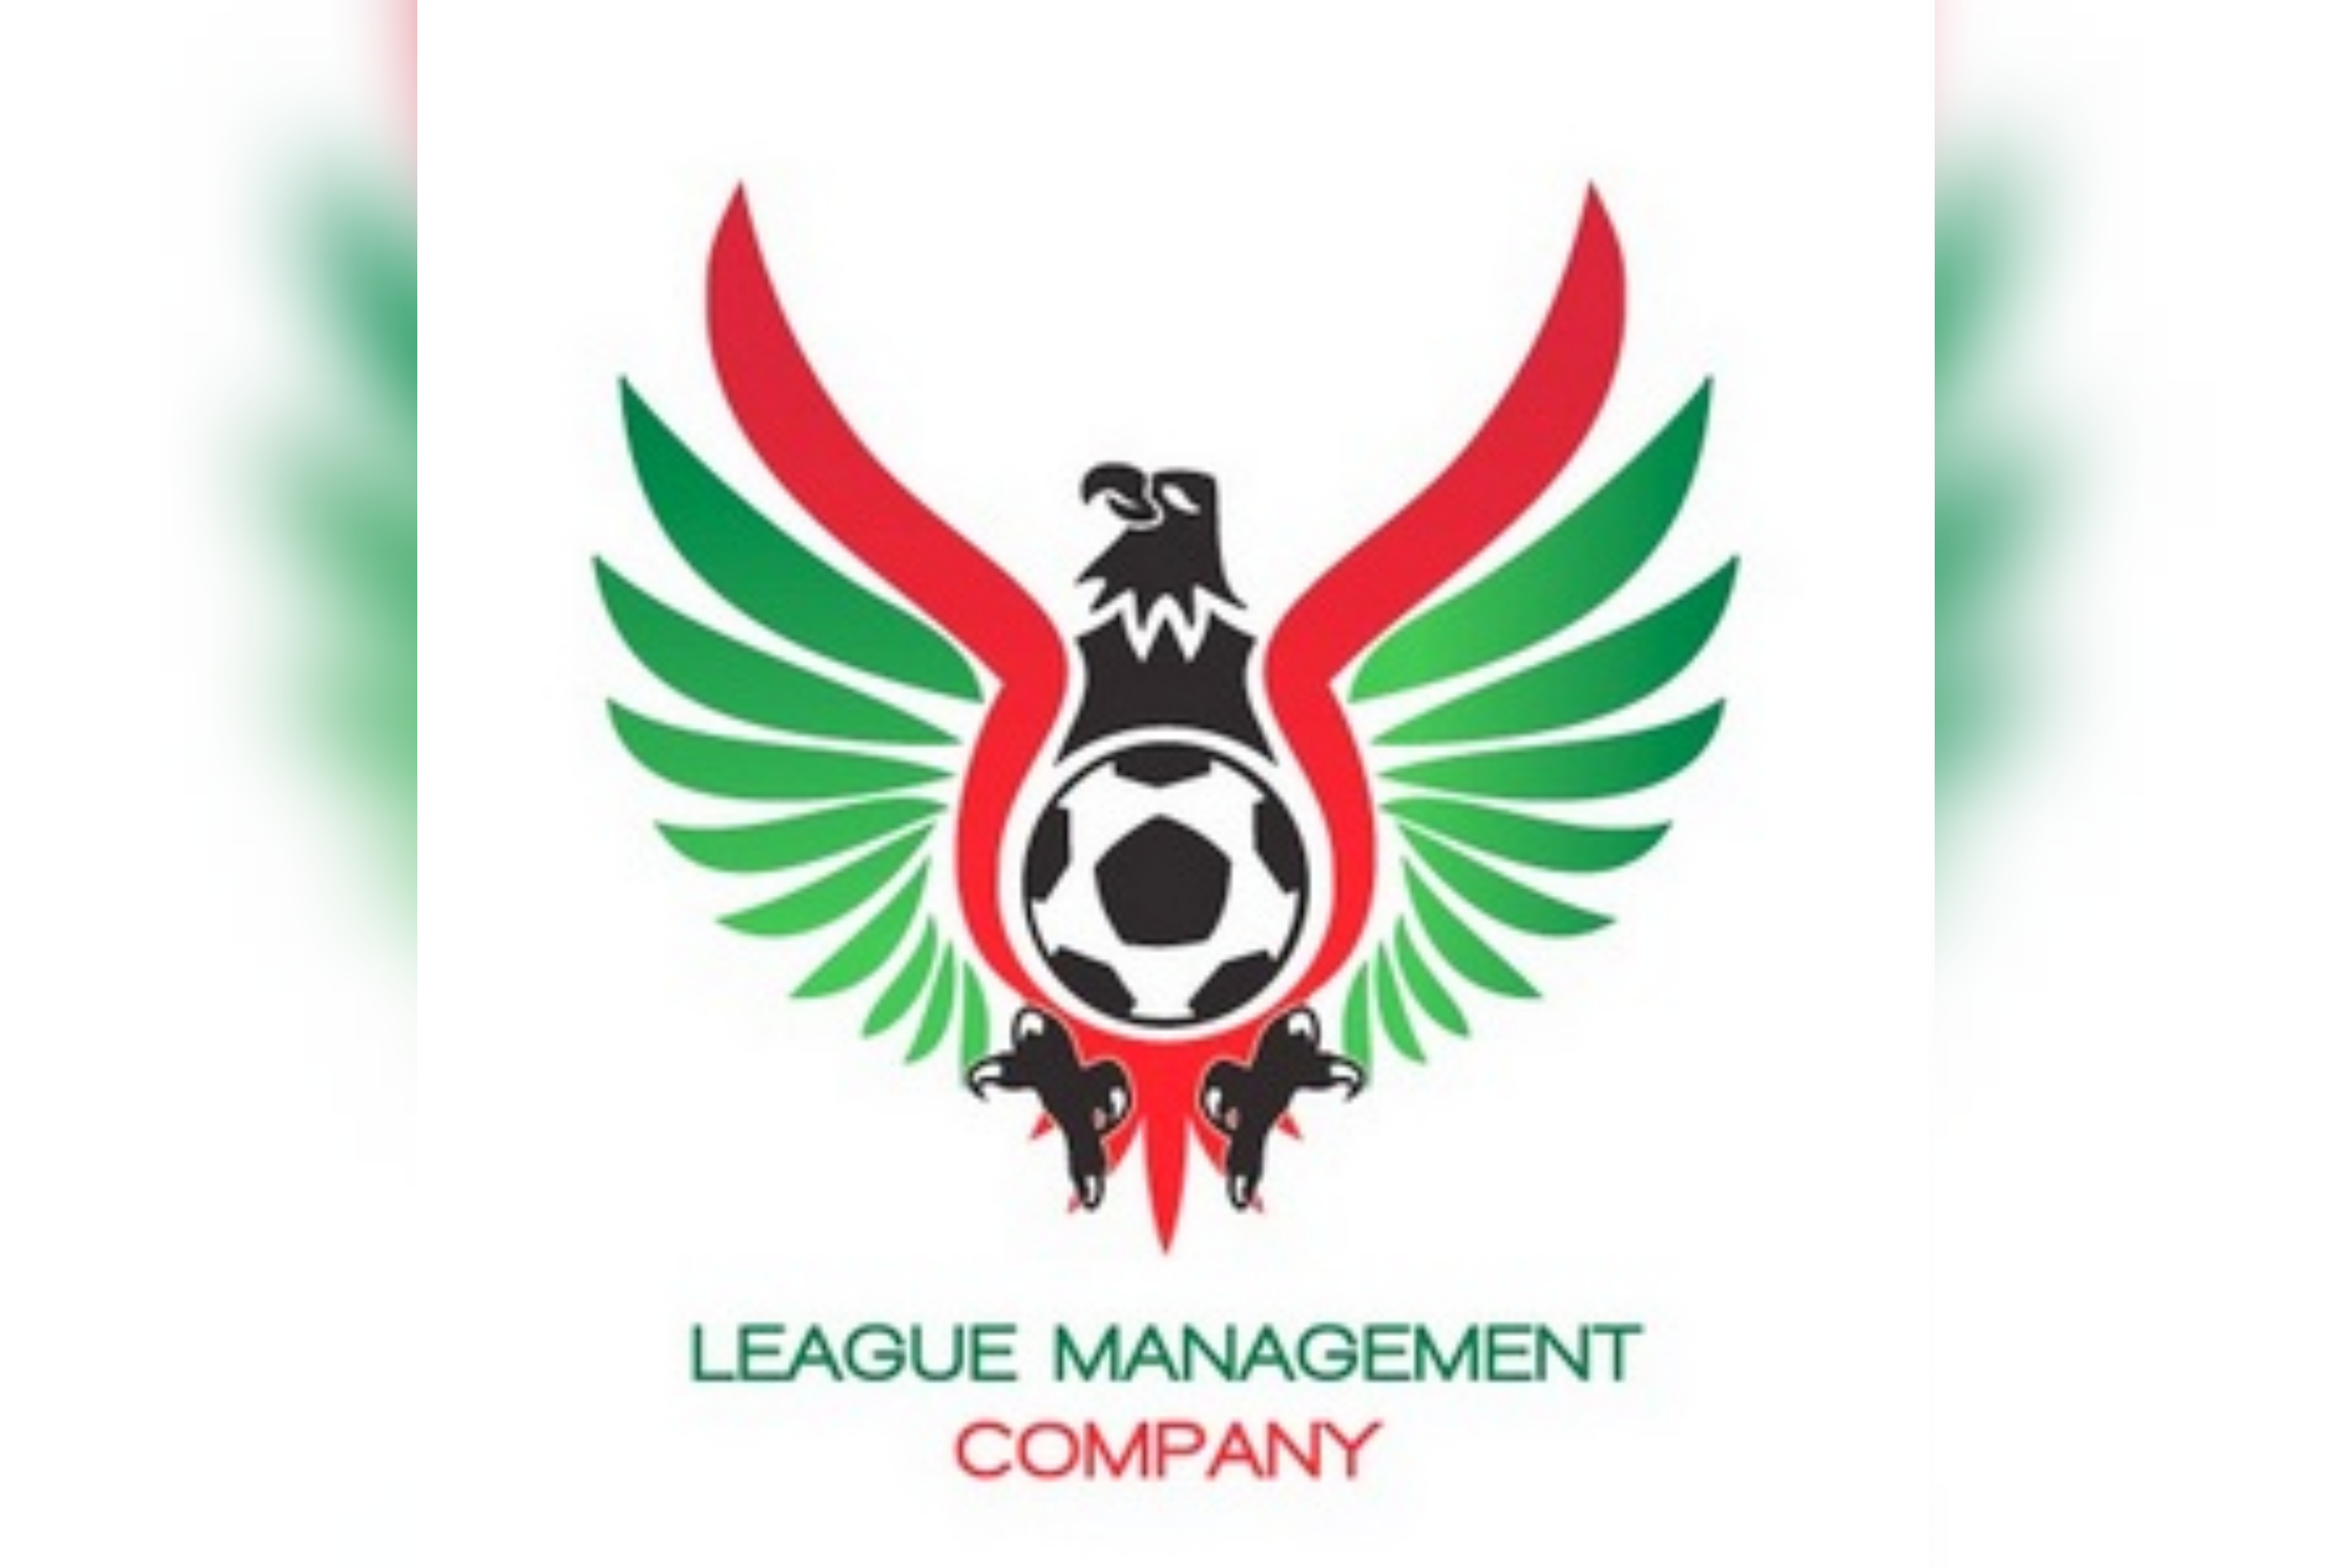 Players Transfer To Obscure Leagues For Survival : Former NPFL Star Blames LMC 1